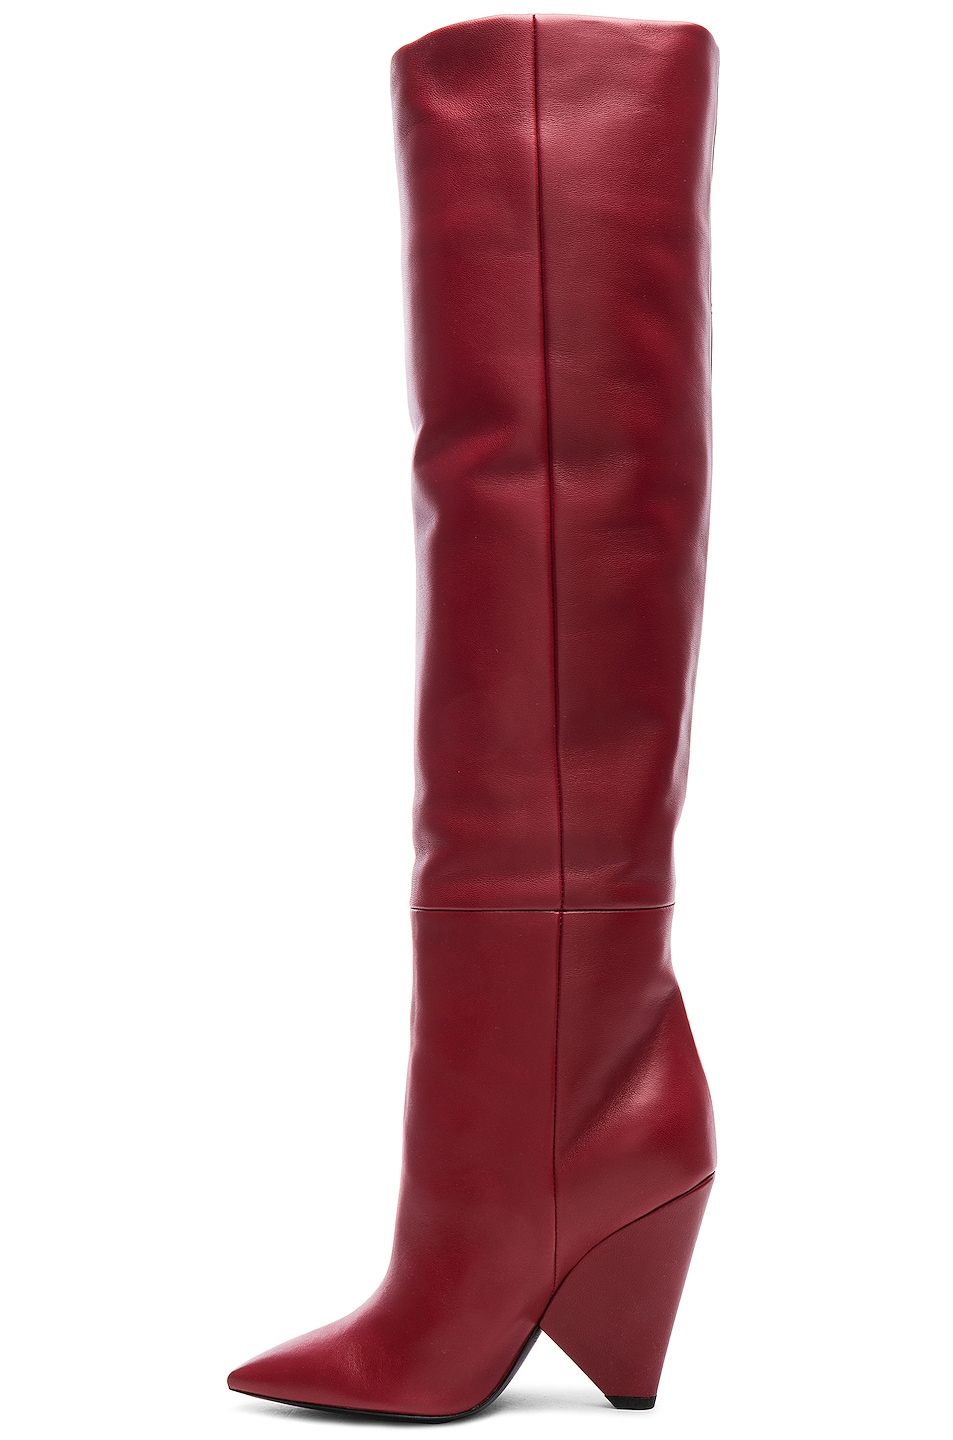 Image 6 of Saint Laurent Niki Thigh High Boots in Hot Red